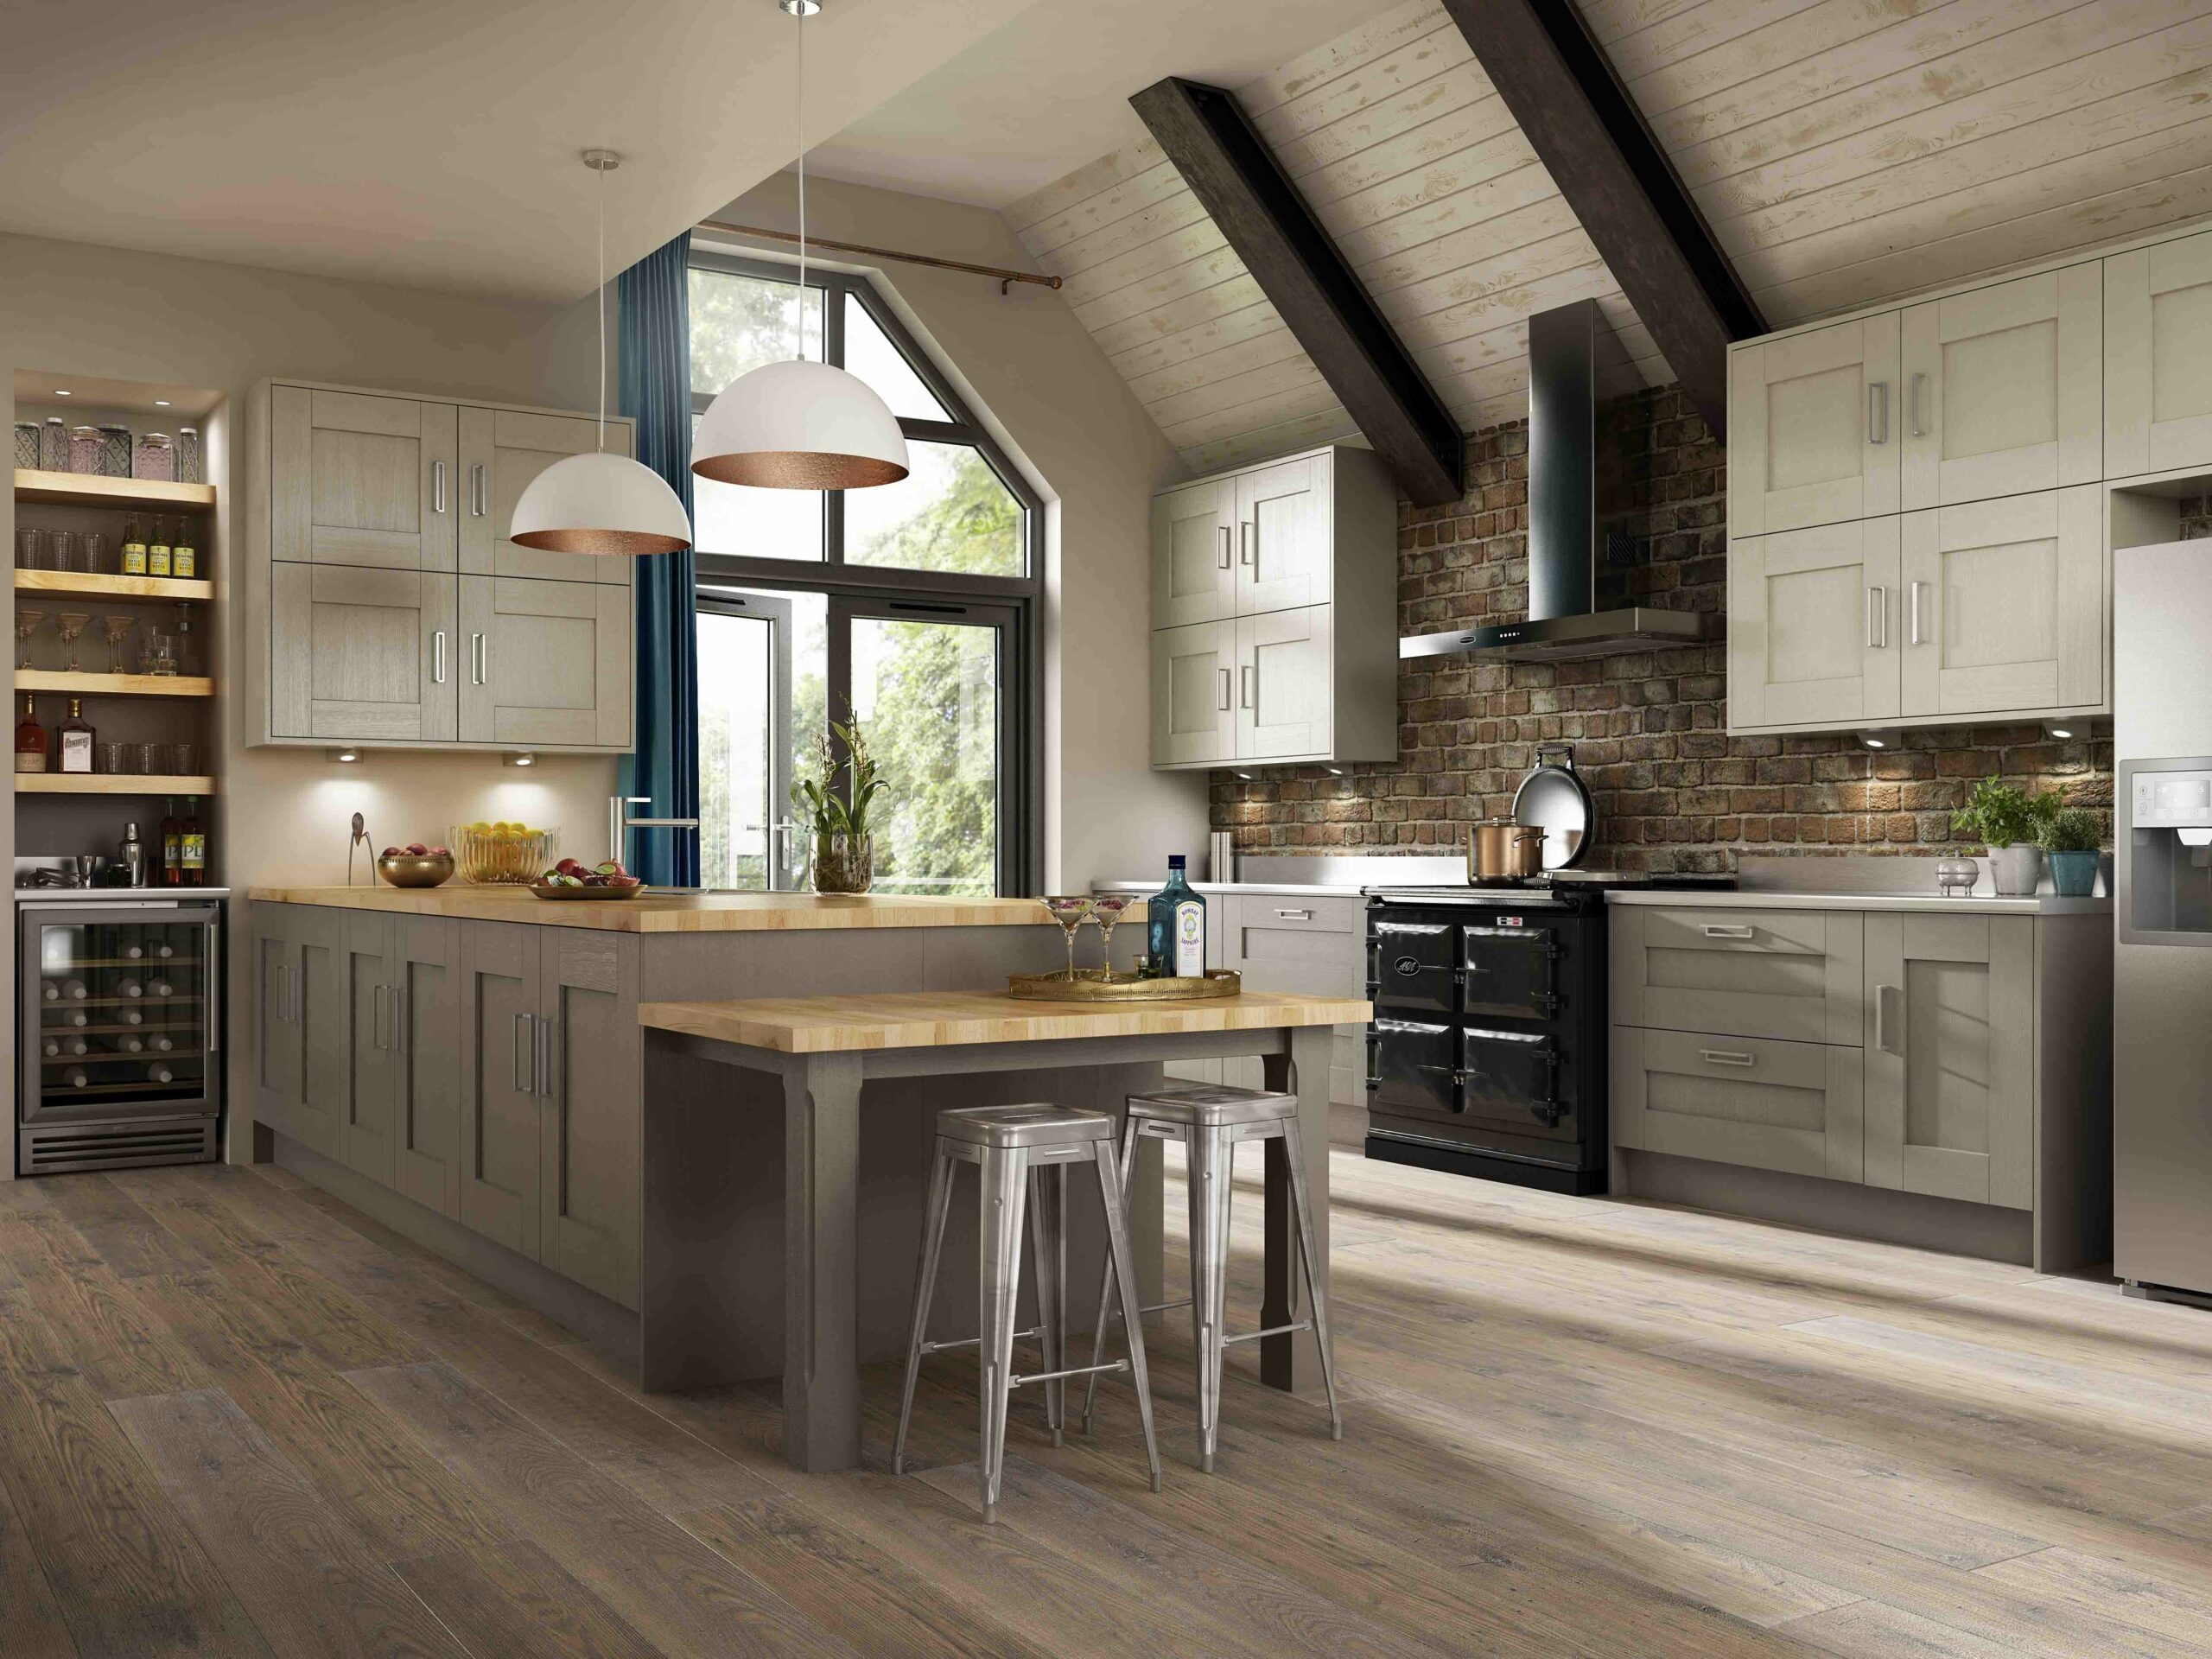 Kitchen Ideas Uk 2019